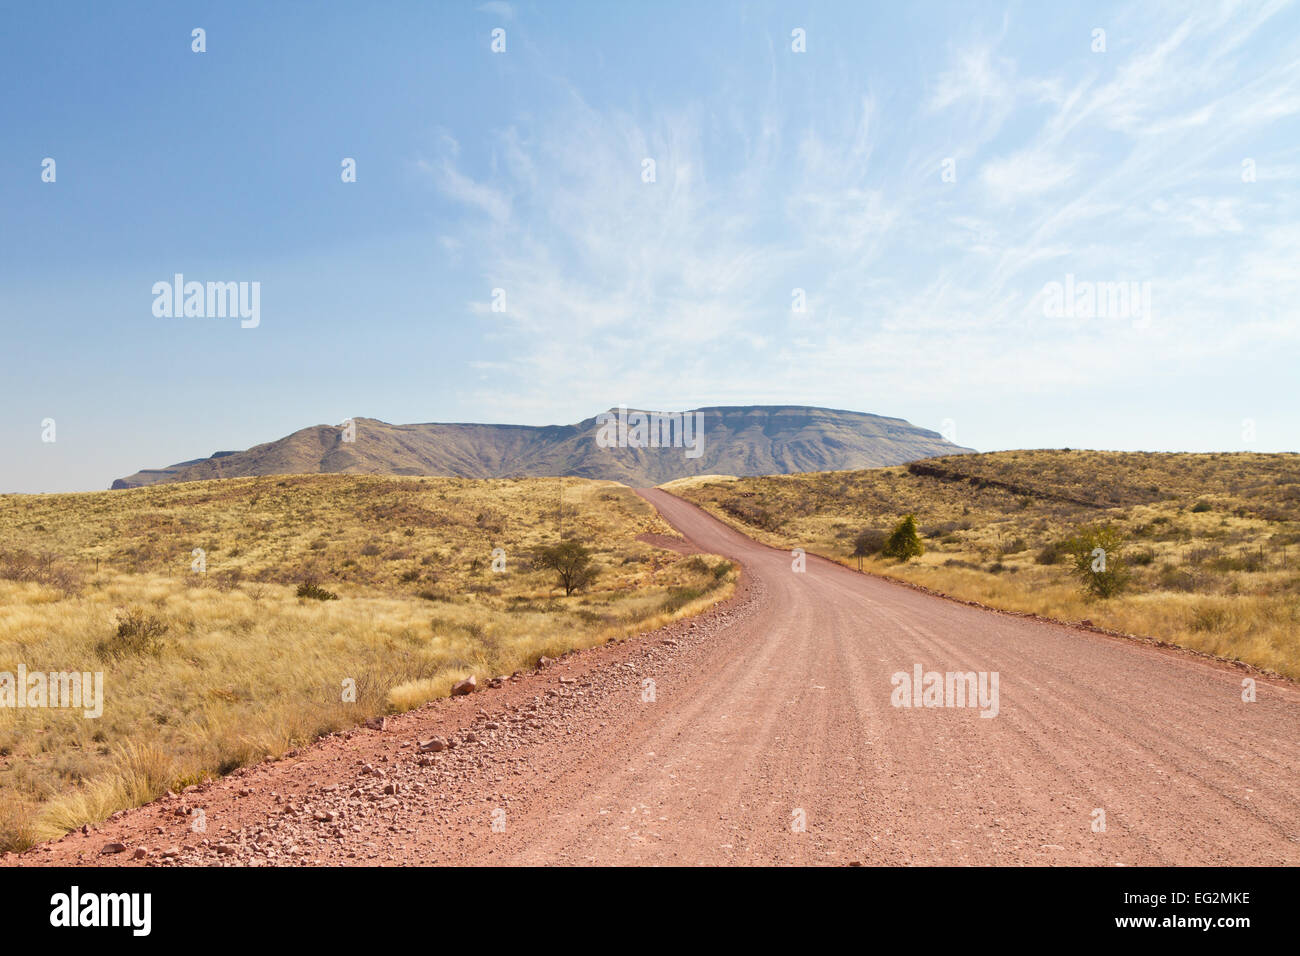 Gravel road in Namibia, Tsaris pass - Stock Image